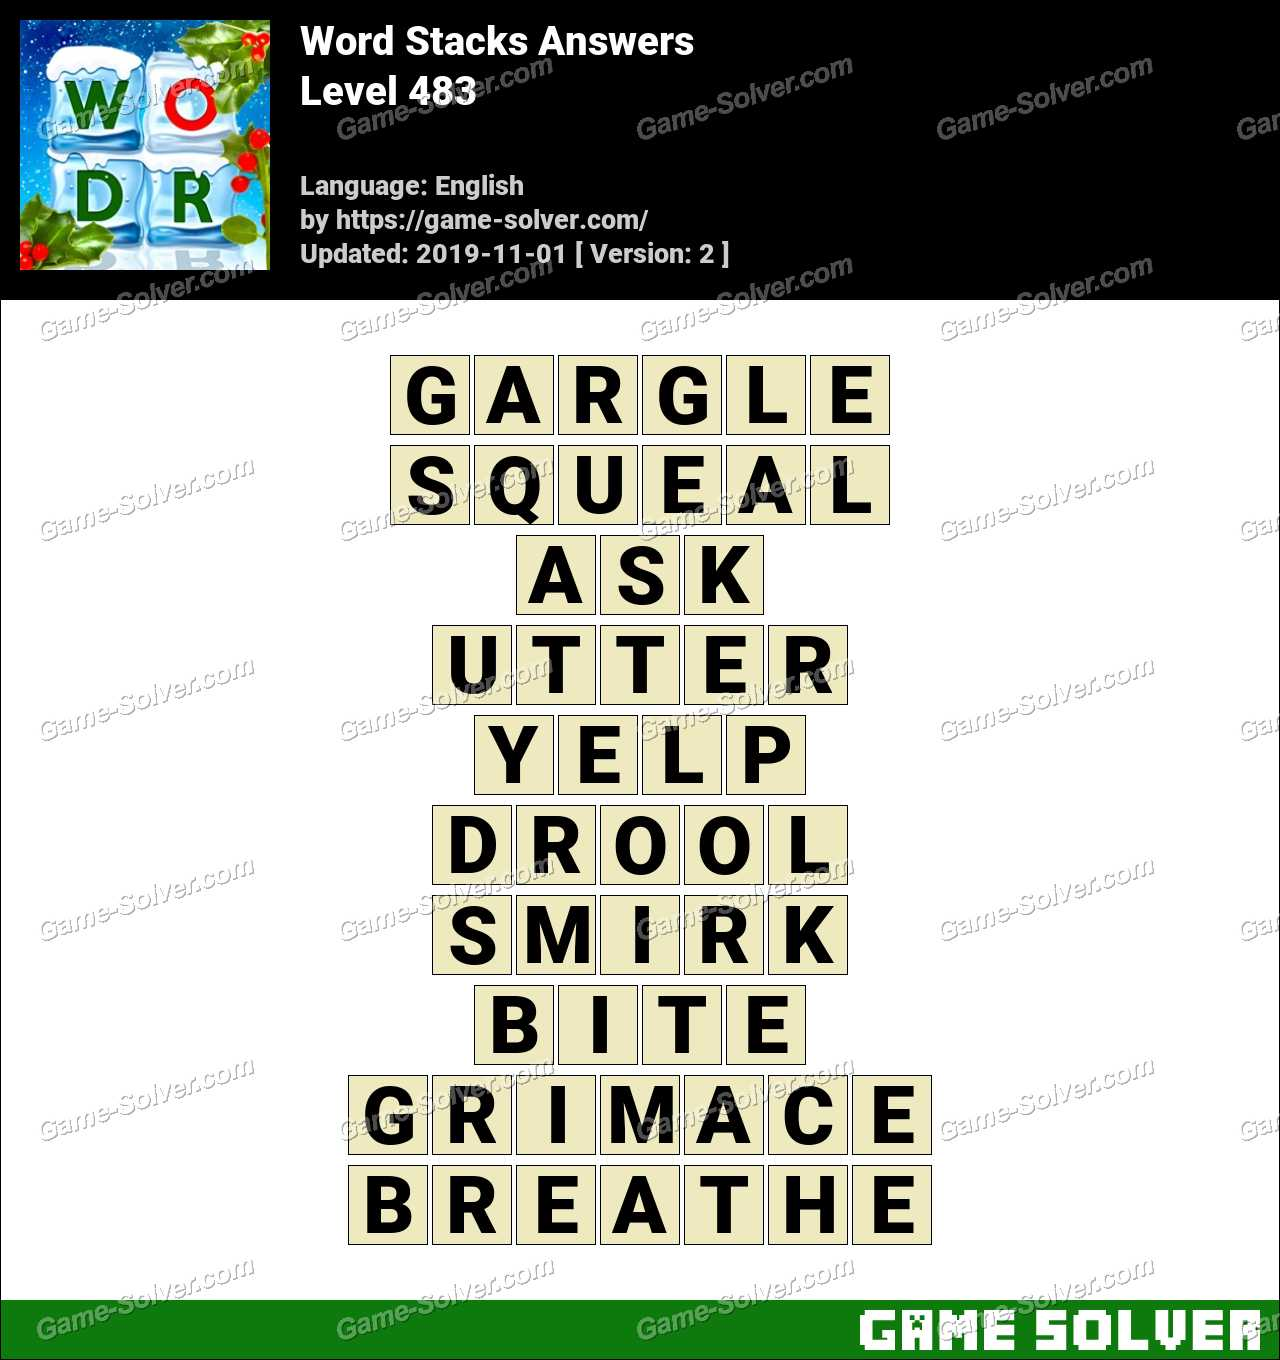 Word Stacks Level 483 Answers